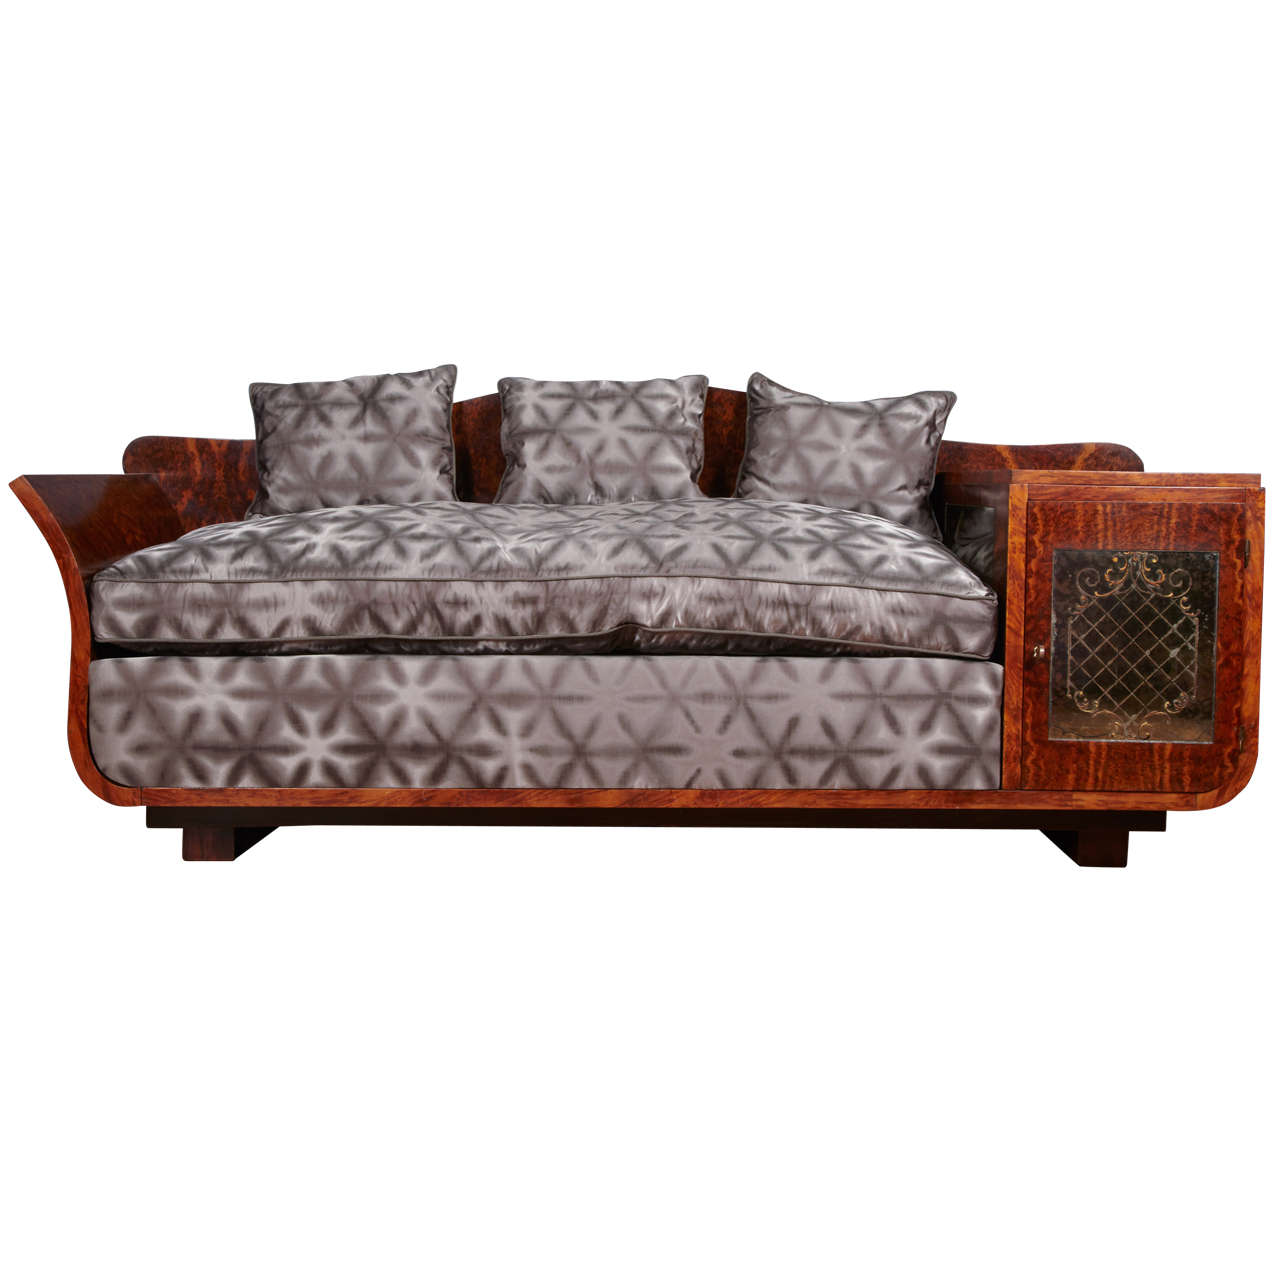 extraordinary art deco sofa for sale at 1stdibs. Black Bedroom Furniture Sets. Home Design Ideas